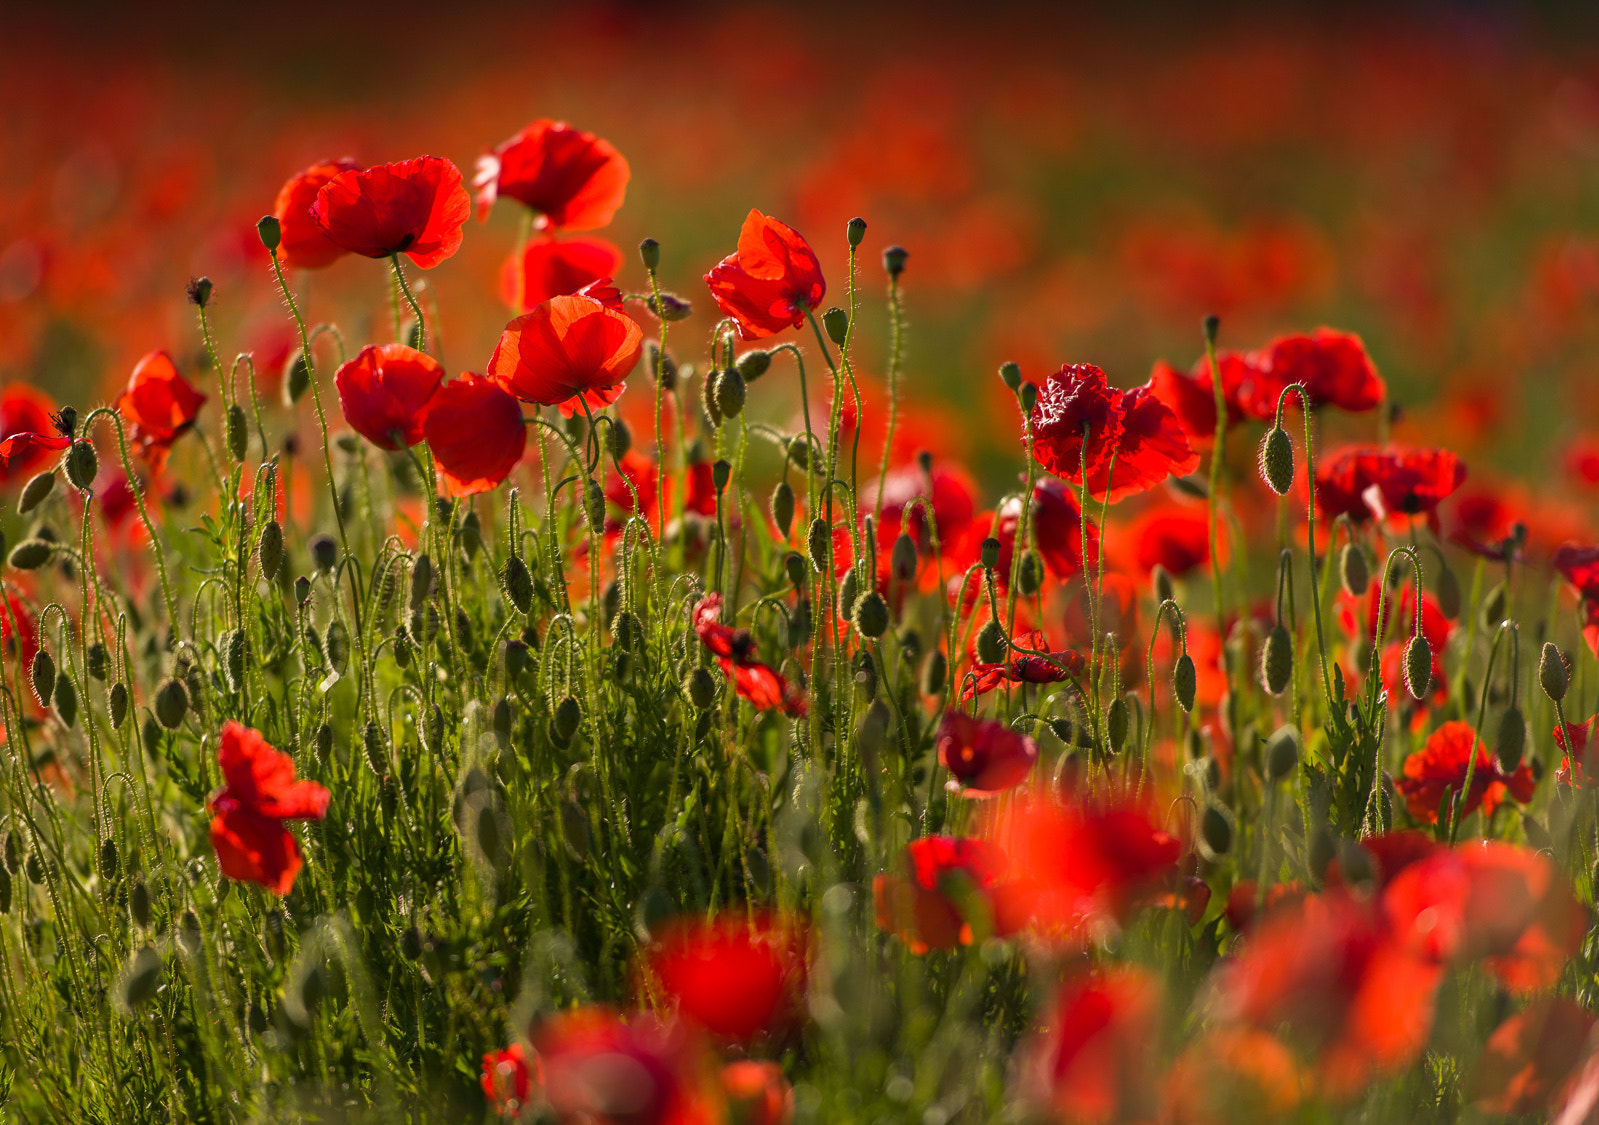 Photograph Red Poppies in Umbria by Hans Kruse on 500px